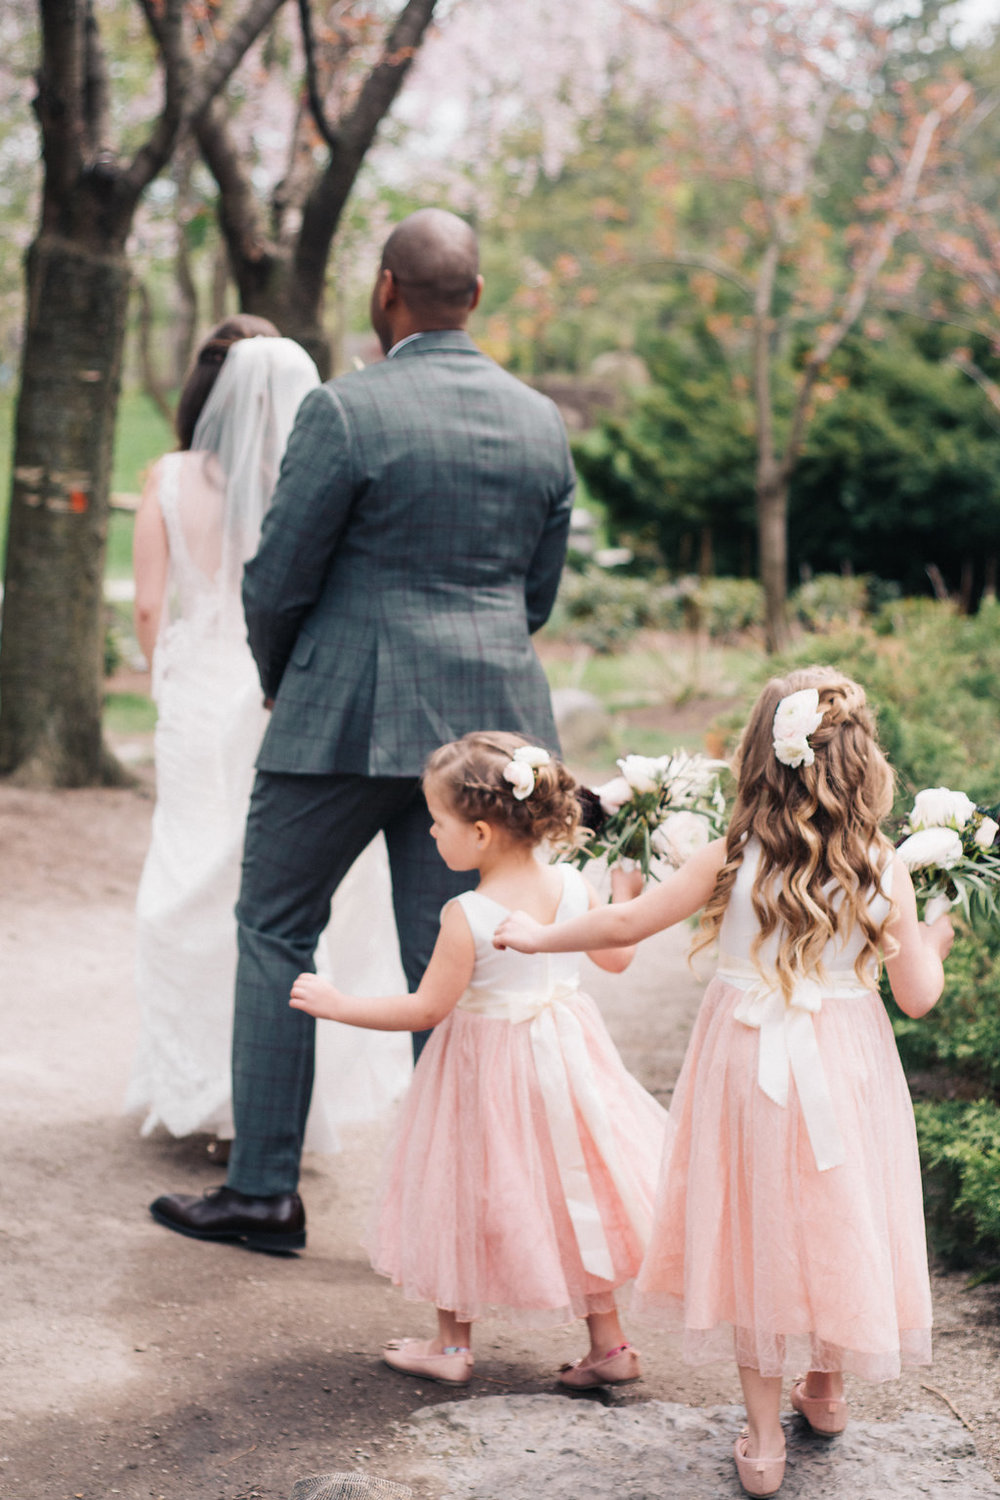 These little flower girls melted our hearts!